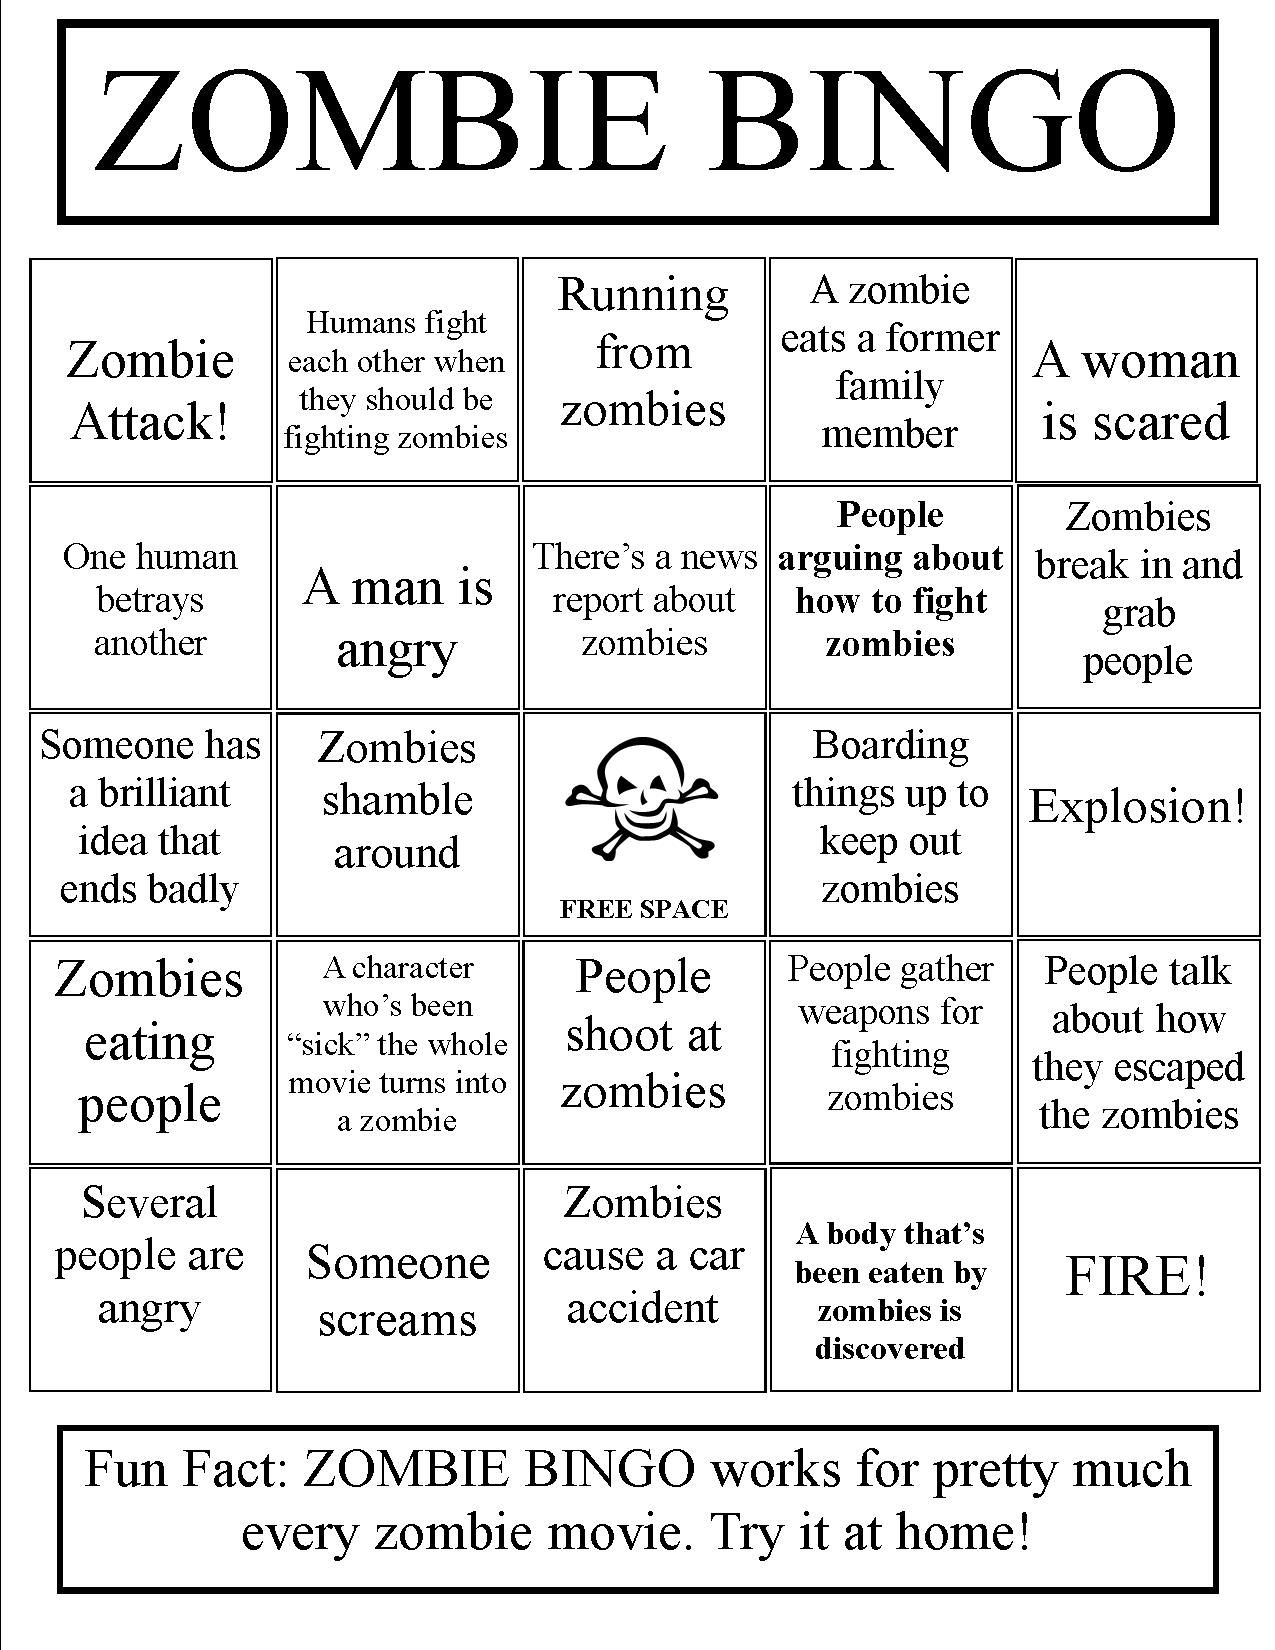 Zombie Bingo Play With Any Zombie Book Or Movie Could